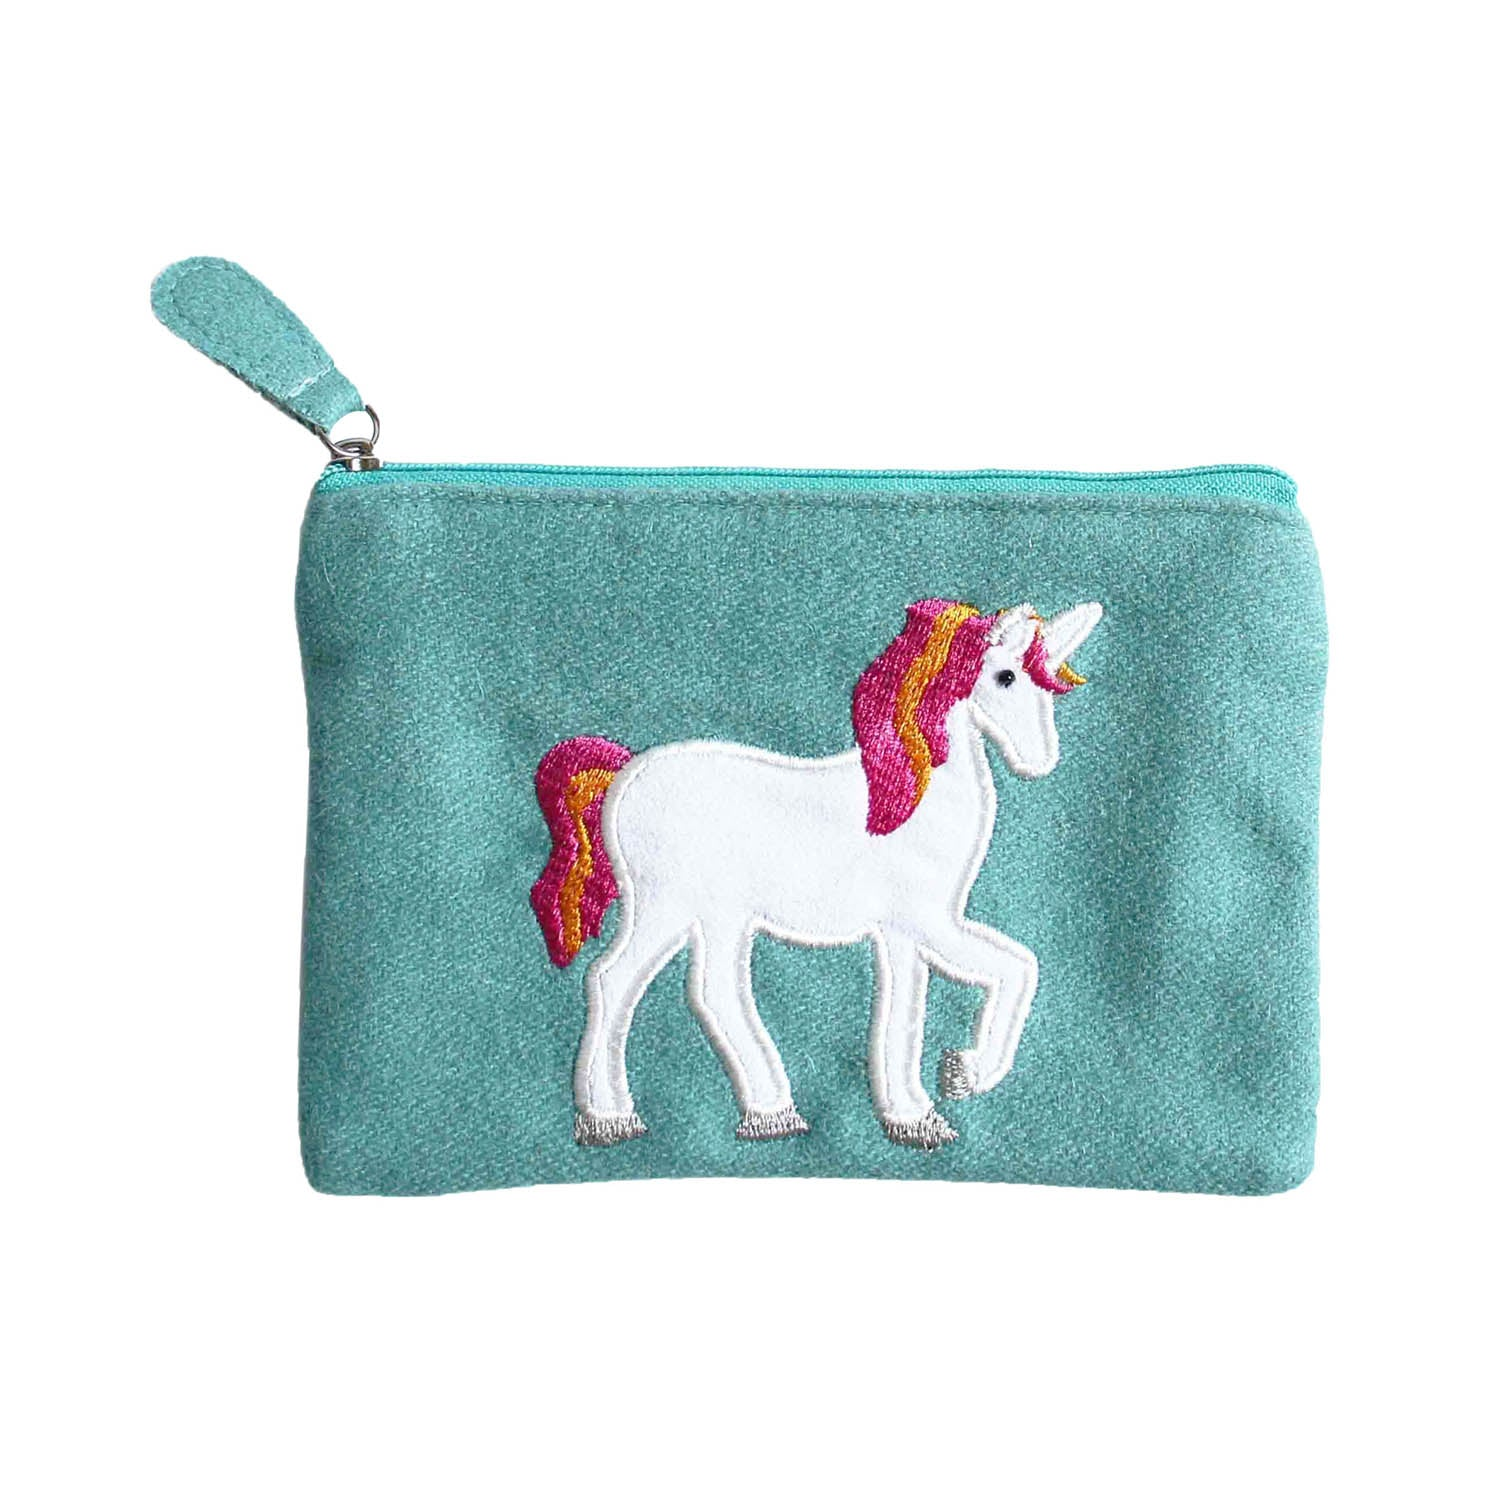 Felt Rainbow Unicorn Purse